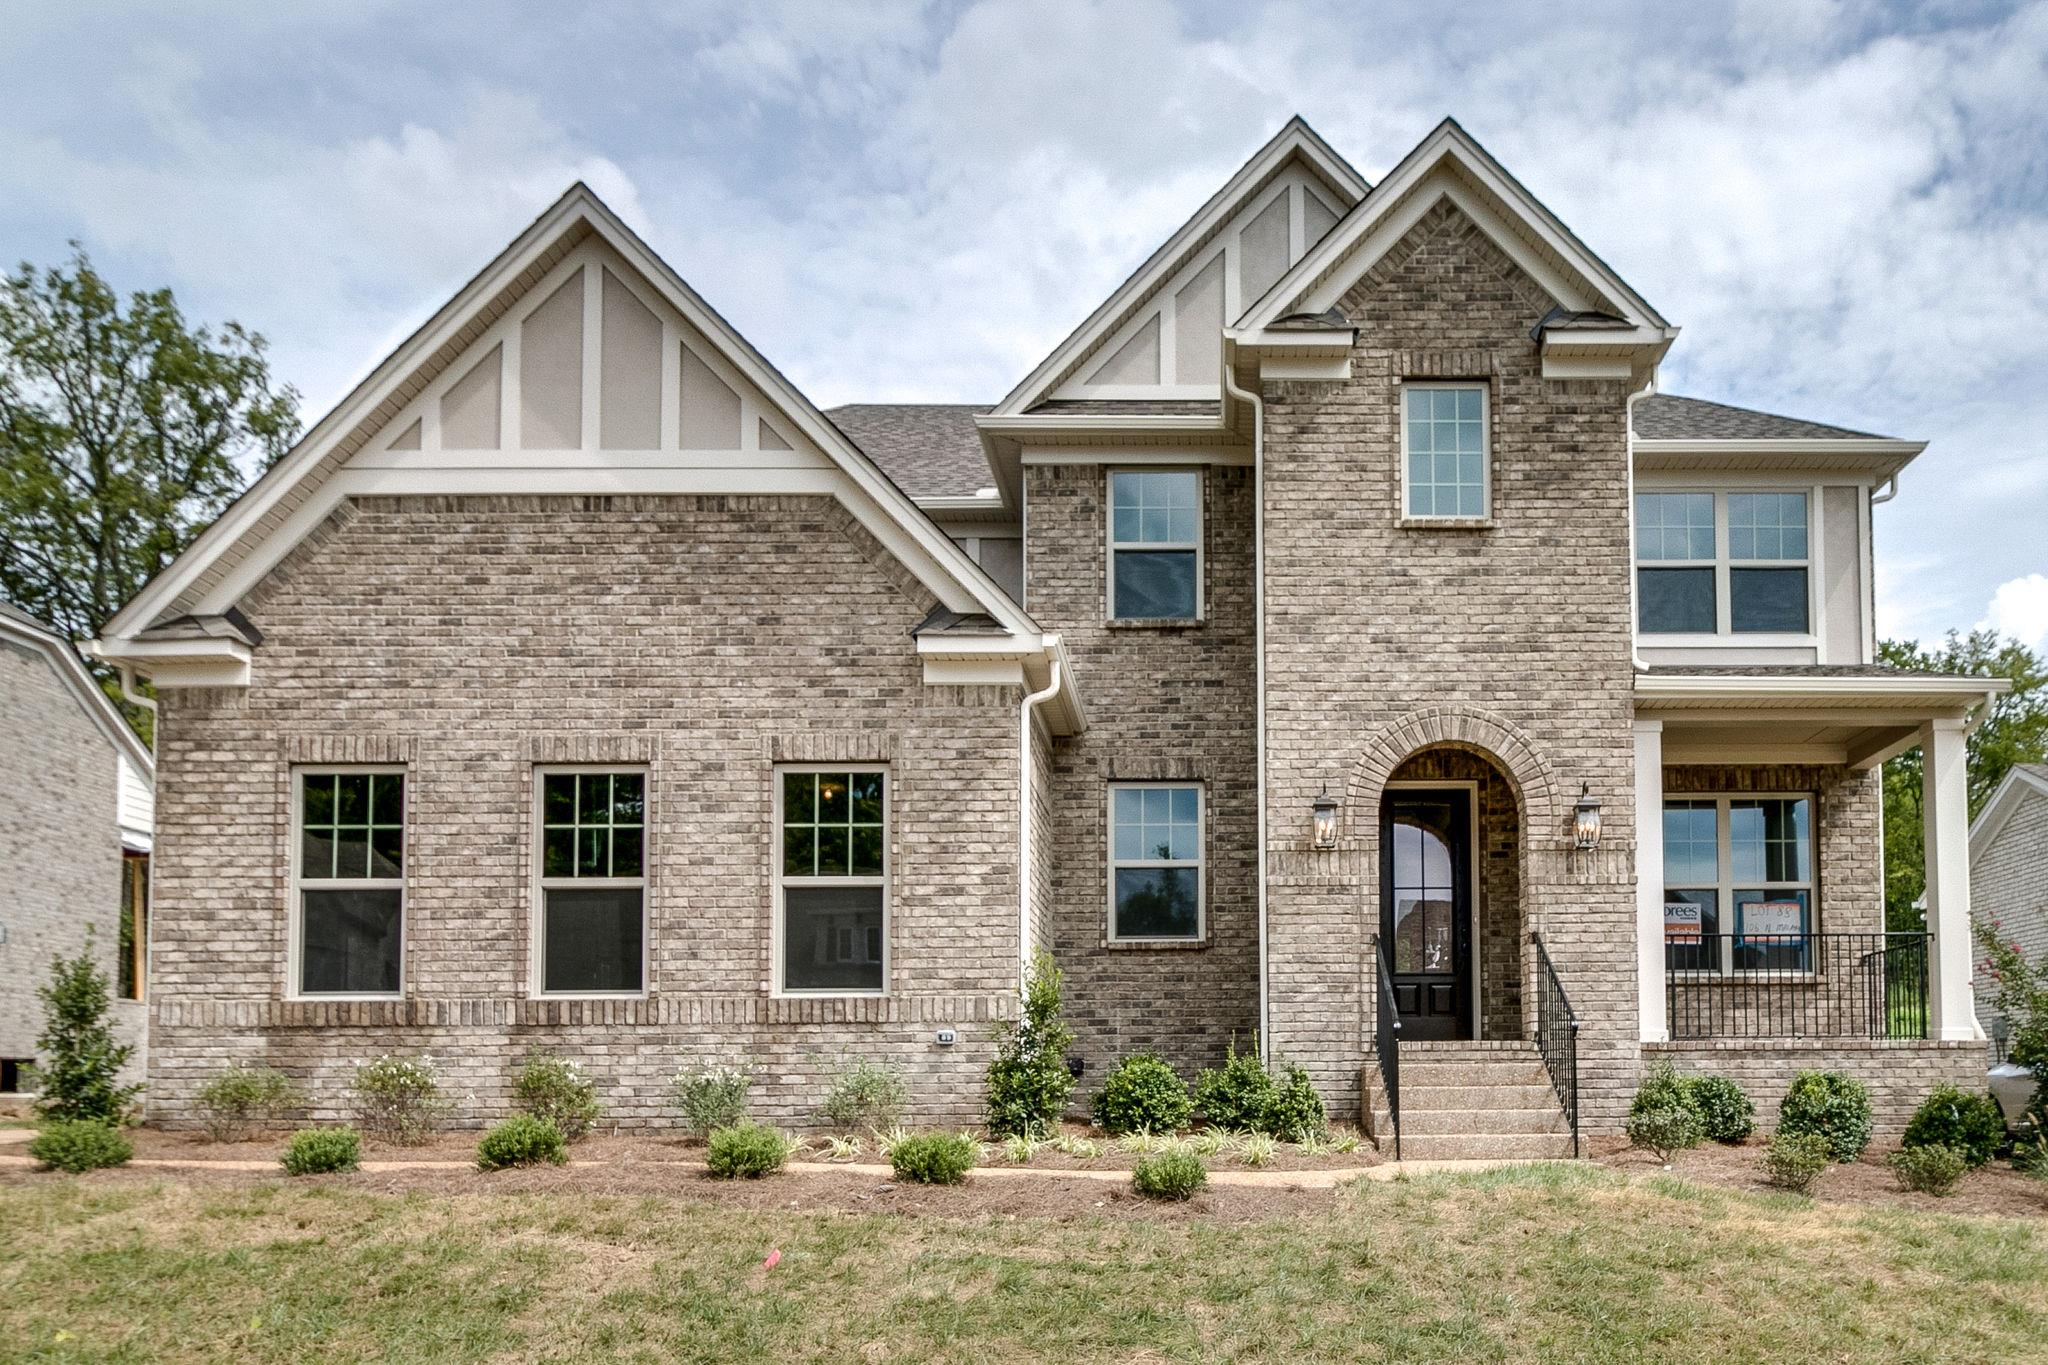 106 North Malayna Dr Lot 88, Hendersonville, TN 37075